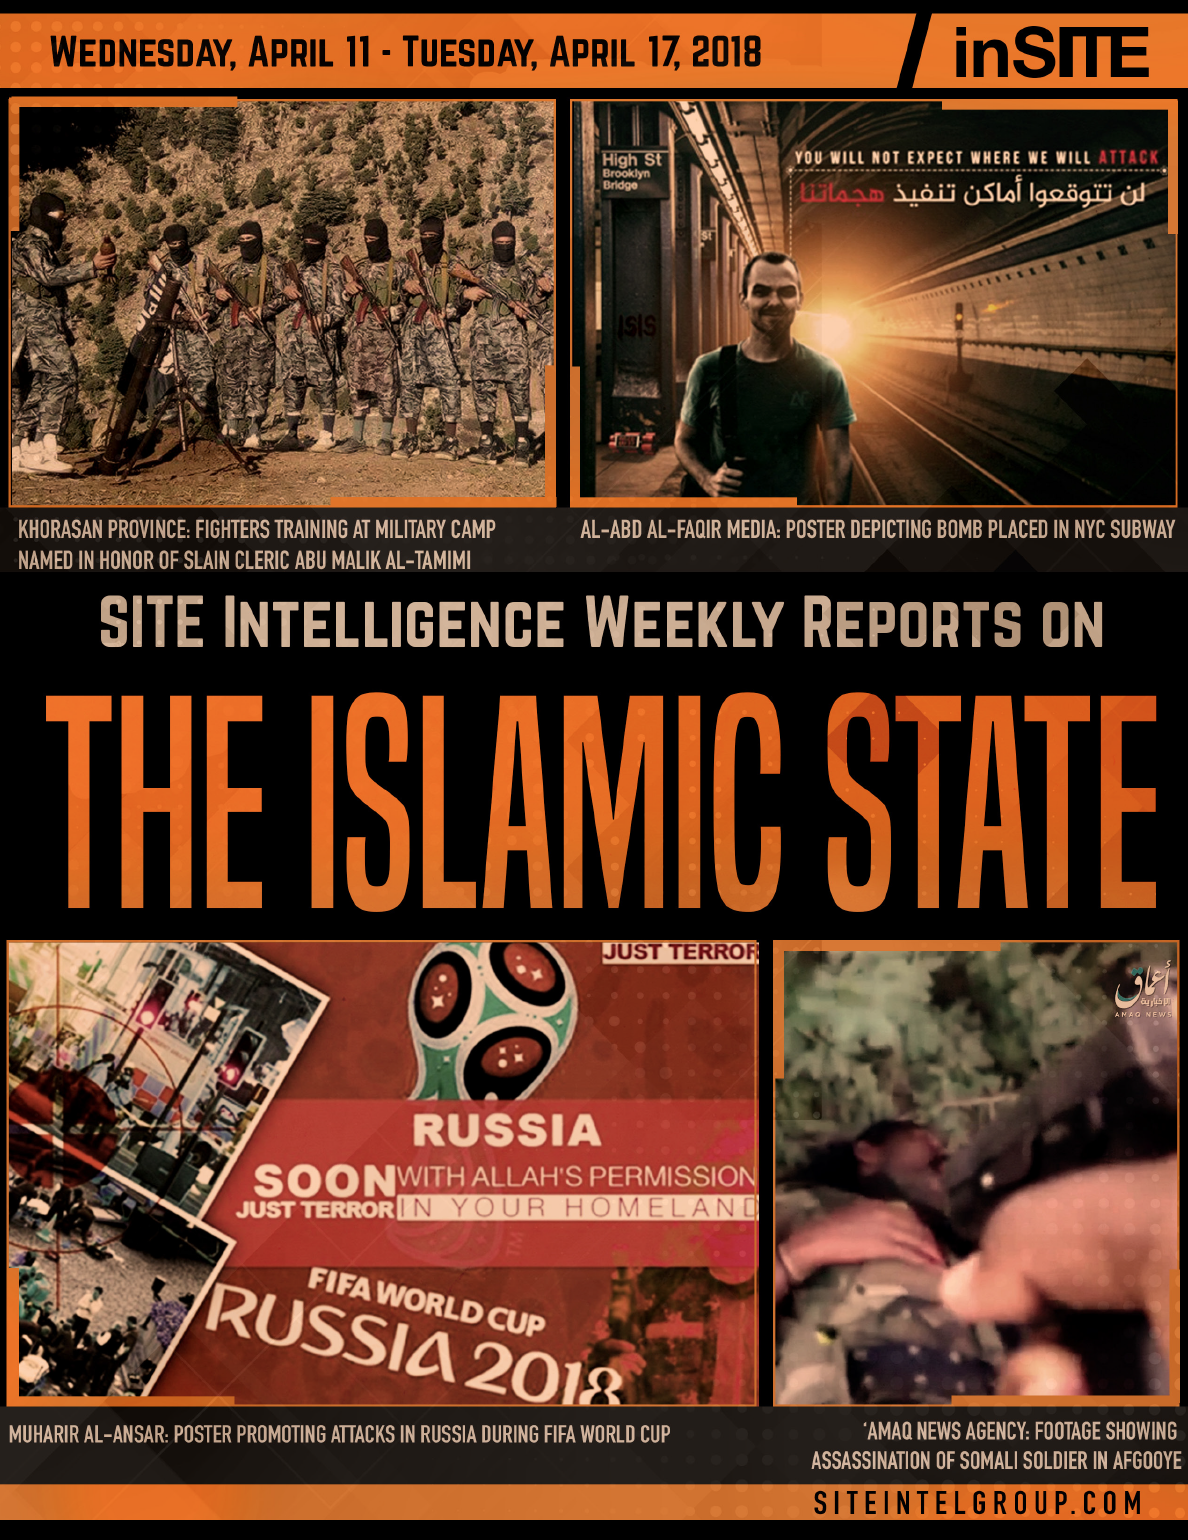 Weekly inSITE on the Islamic State for April 11-17, 2018